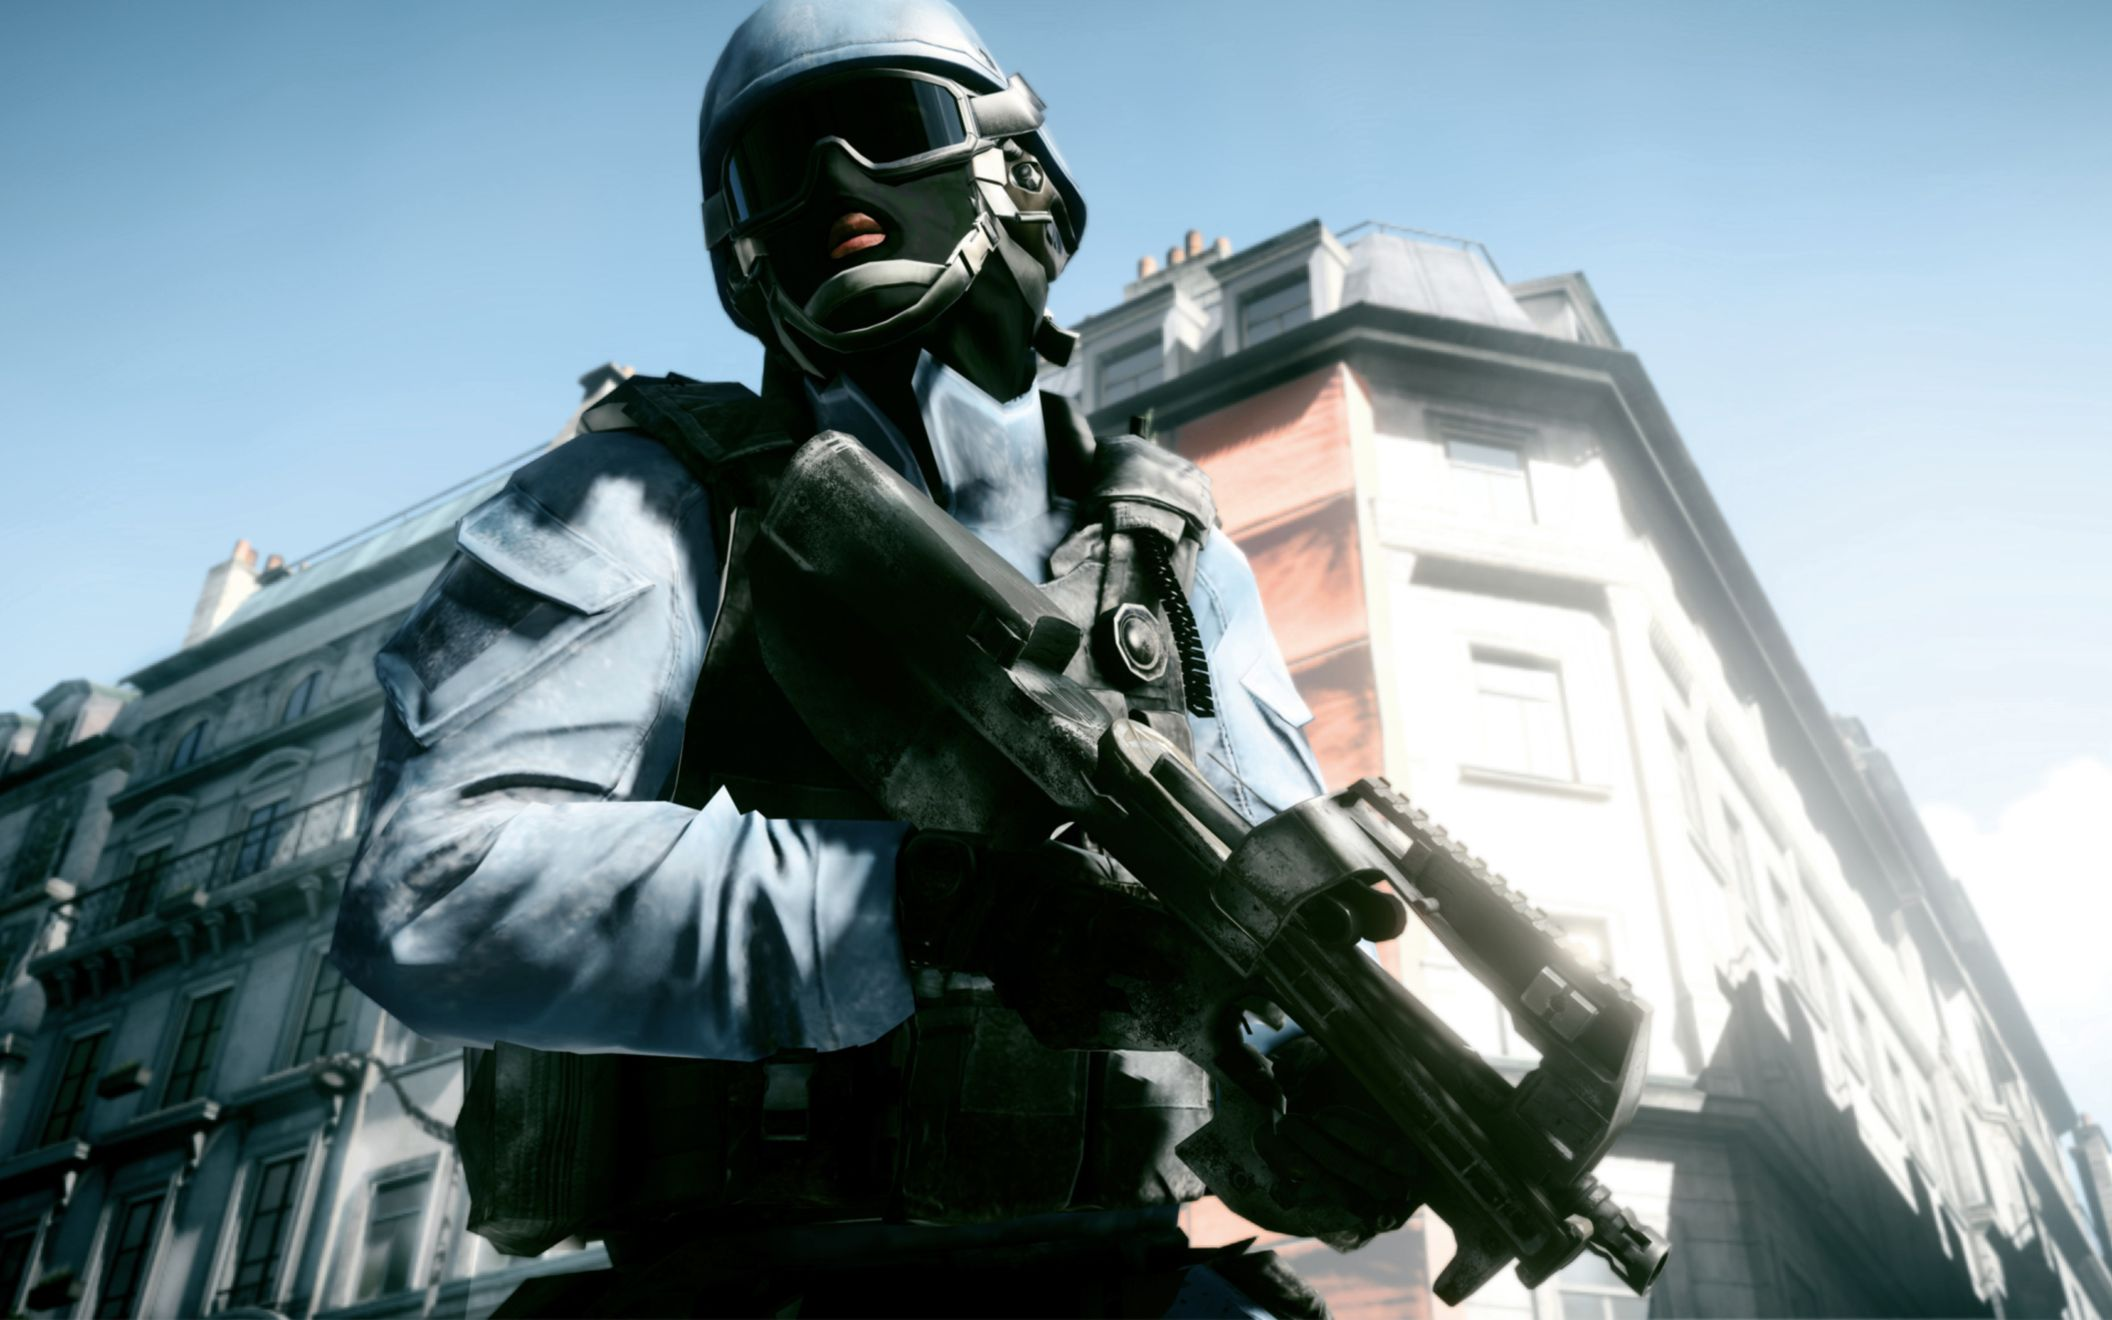 Download free HD Battlefield 3 Paris Wide Wallpaper, image